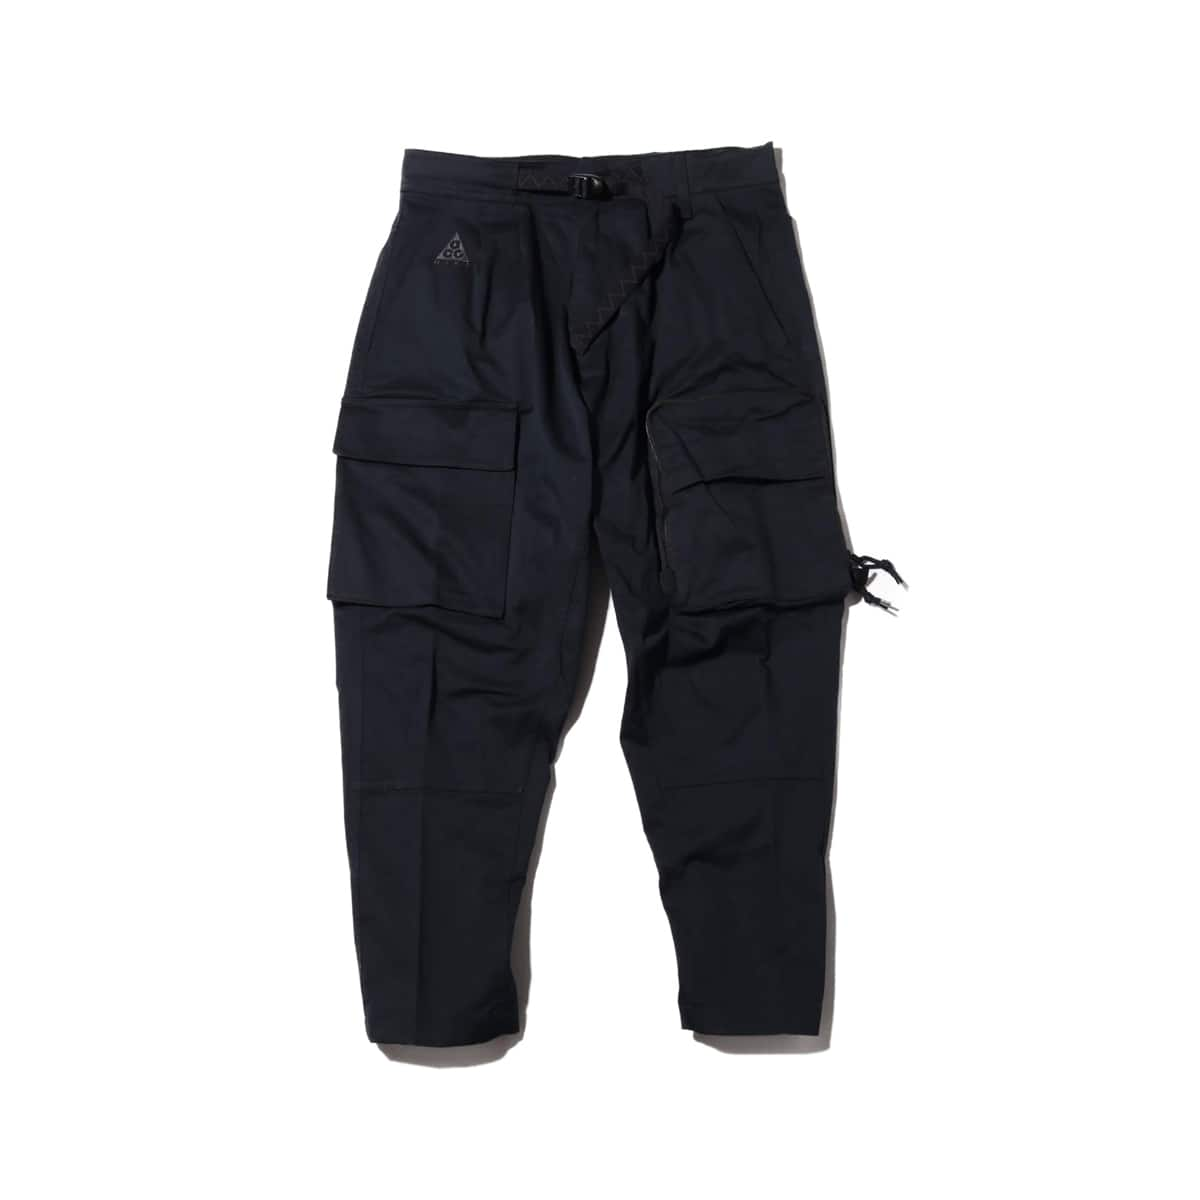 NIKE AS M NRG ACG PANT CARGO WVN BLACK 20SP-S_photo_large